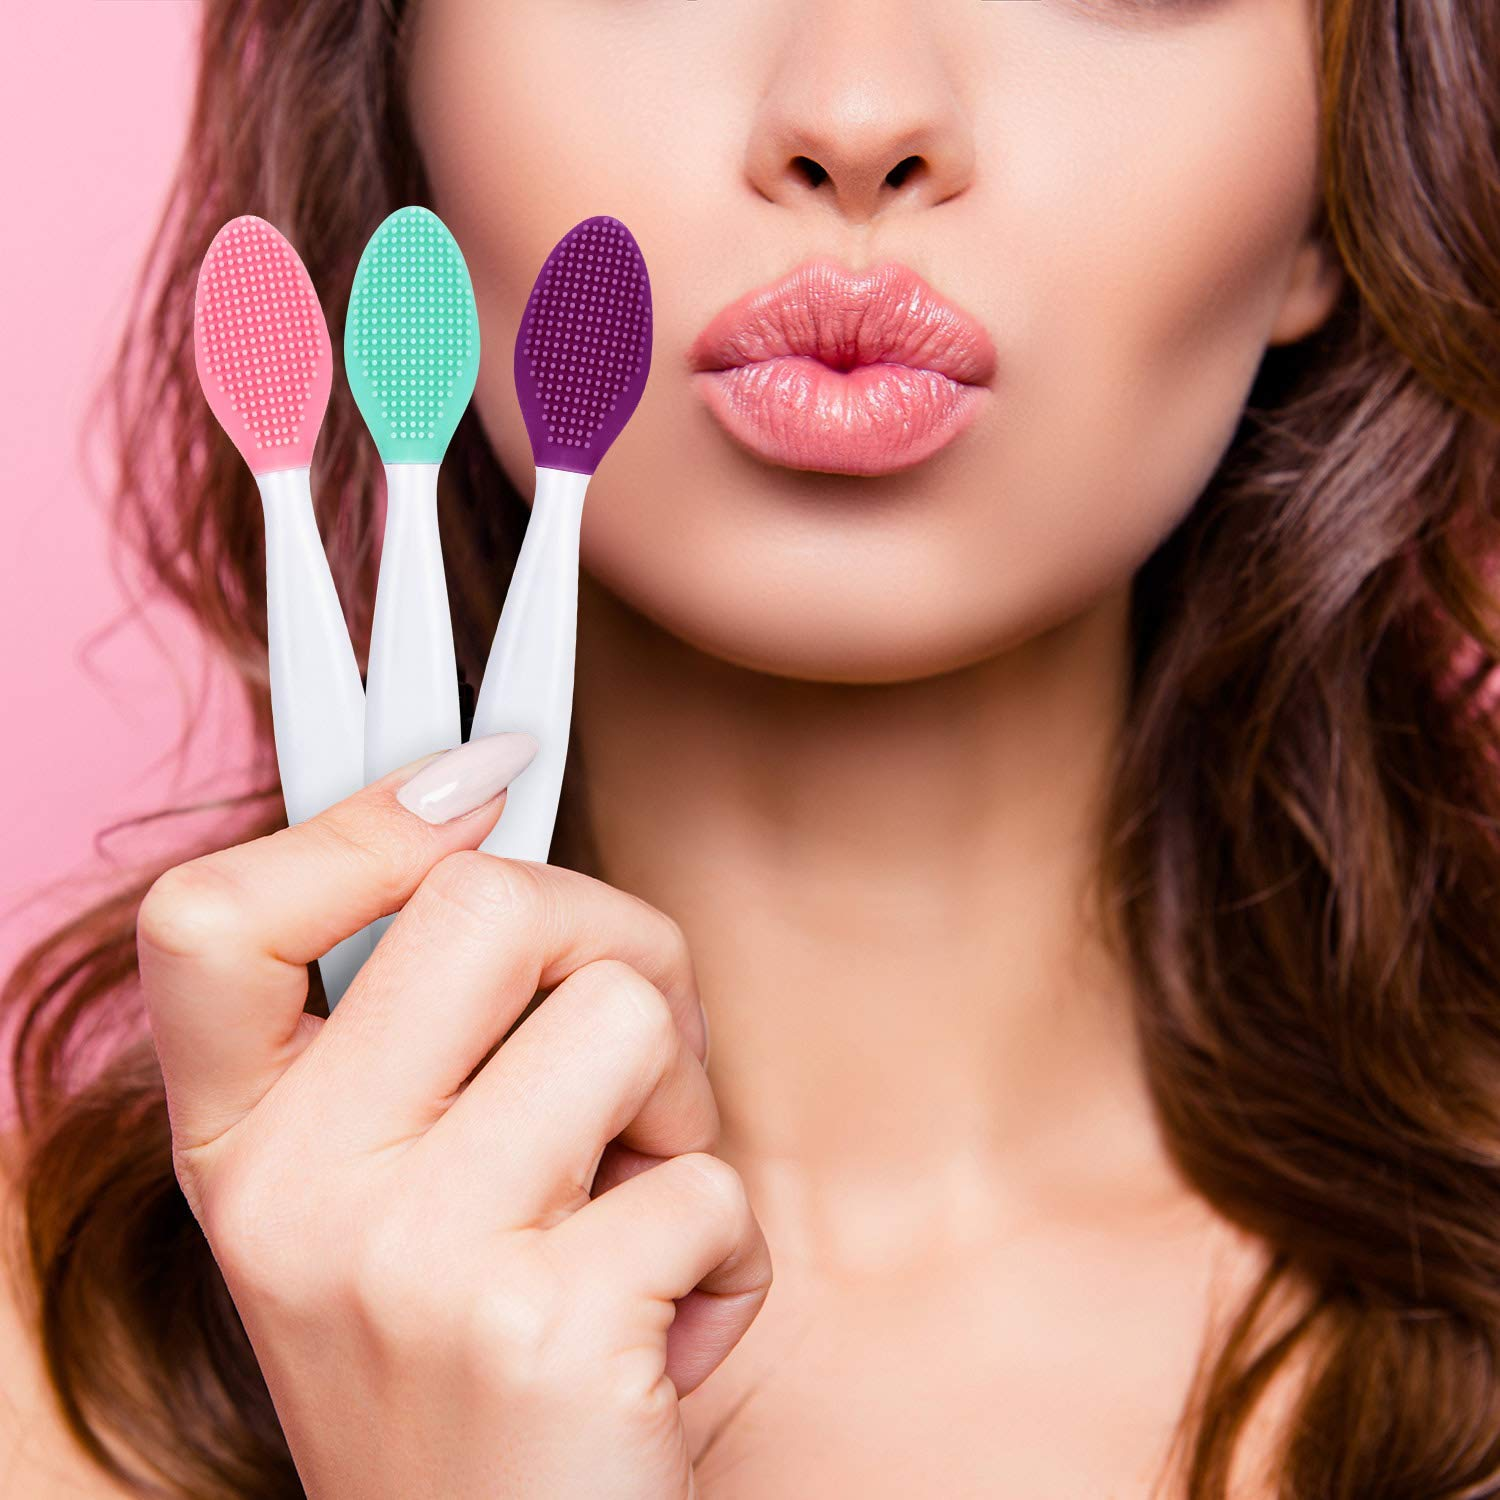 8 Pcs Lip Scrub Brush, Silicone Lip Scrub Double-Sided Tool for Smoother and Fuller Lip Exfoliator: Beauty